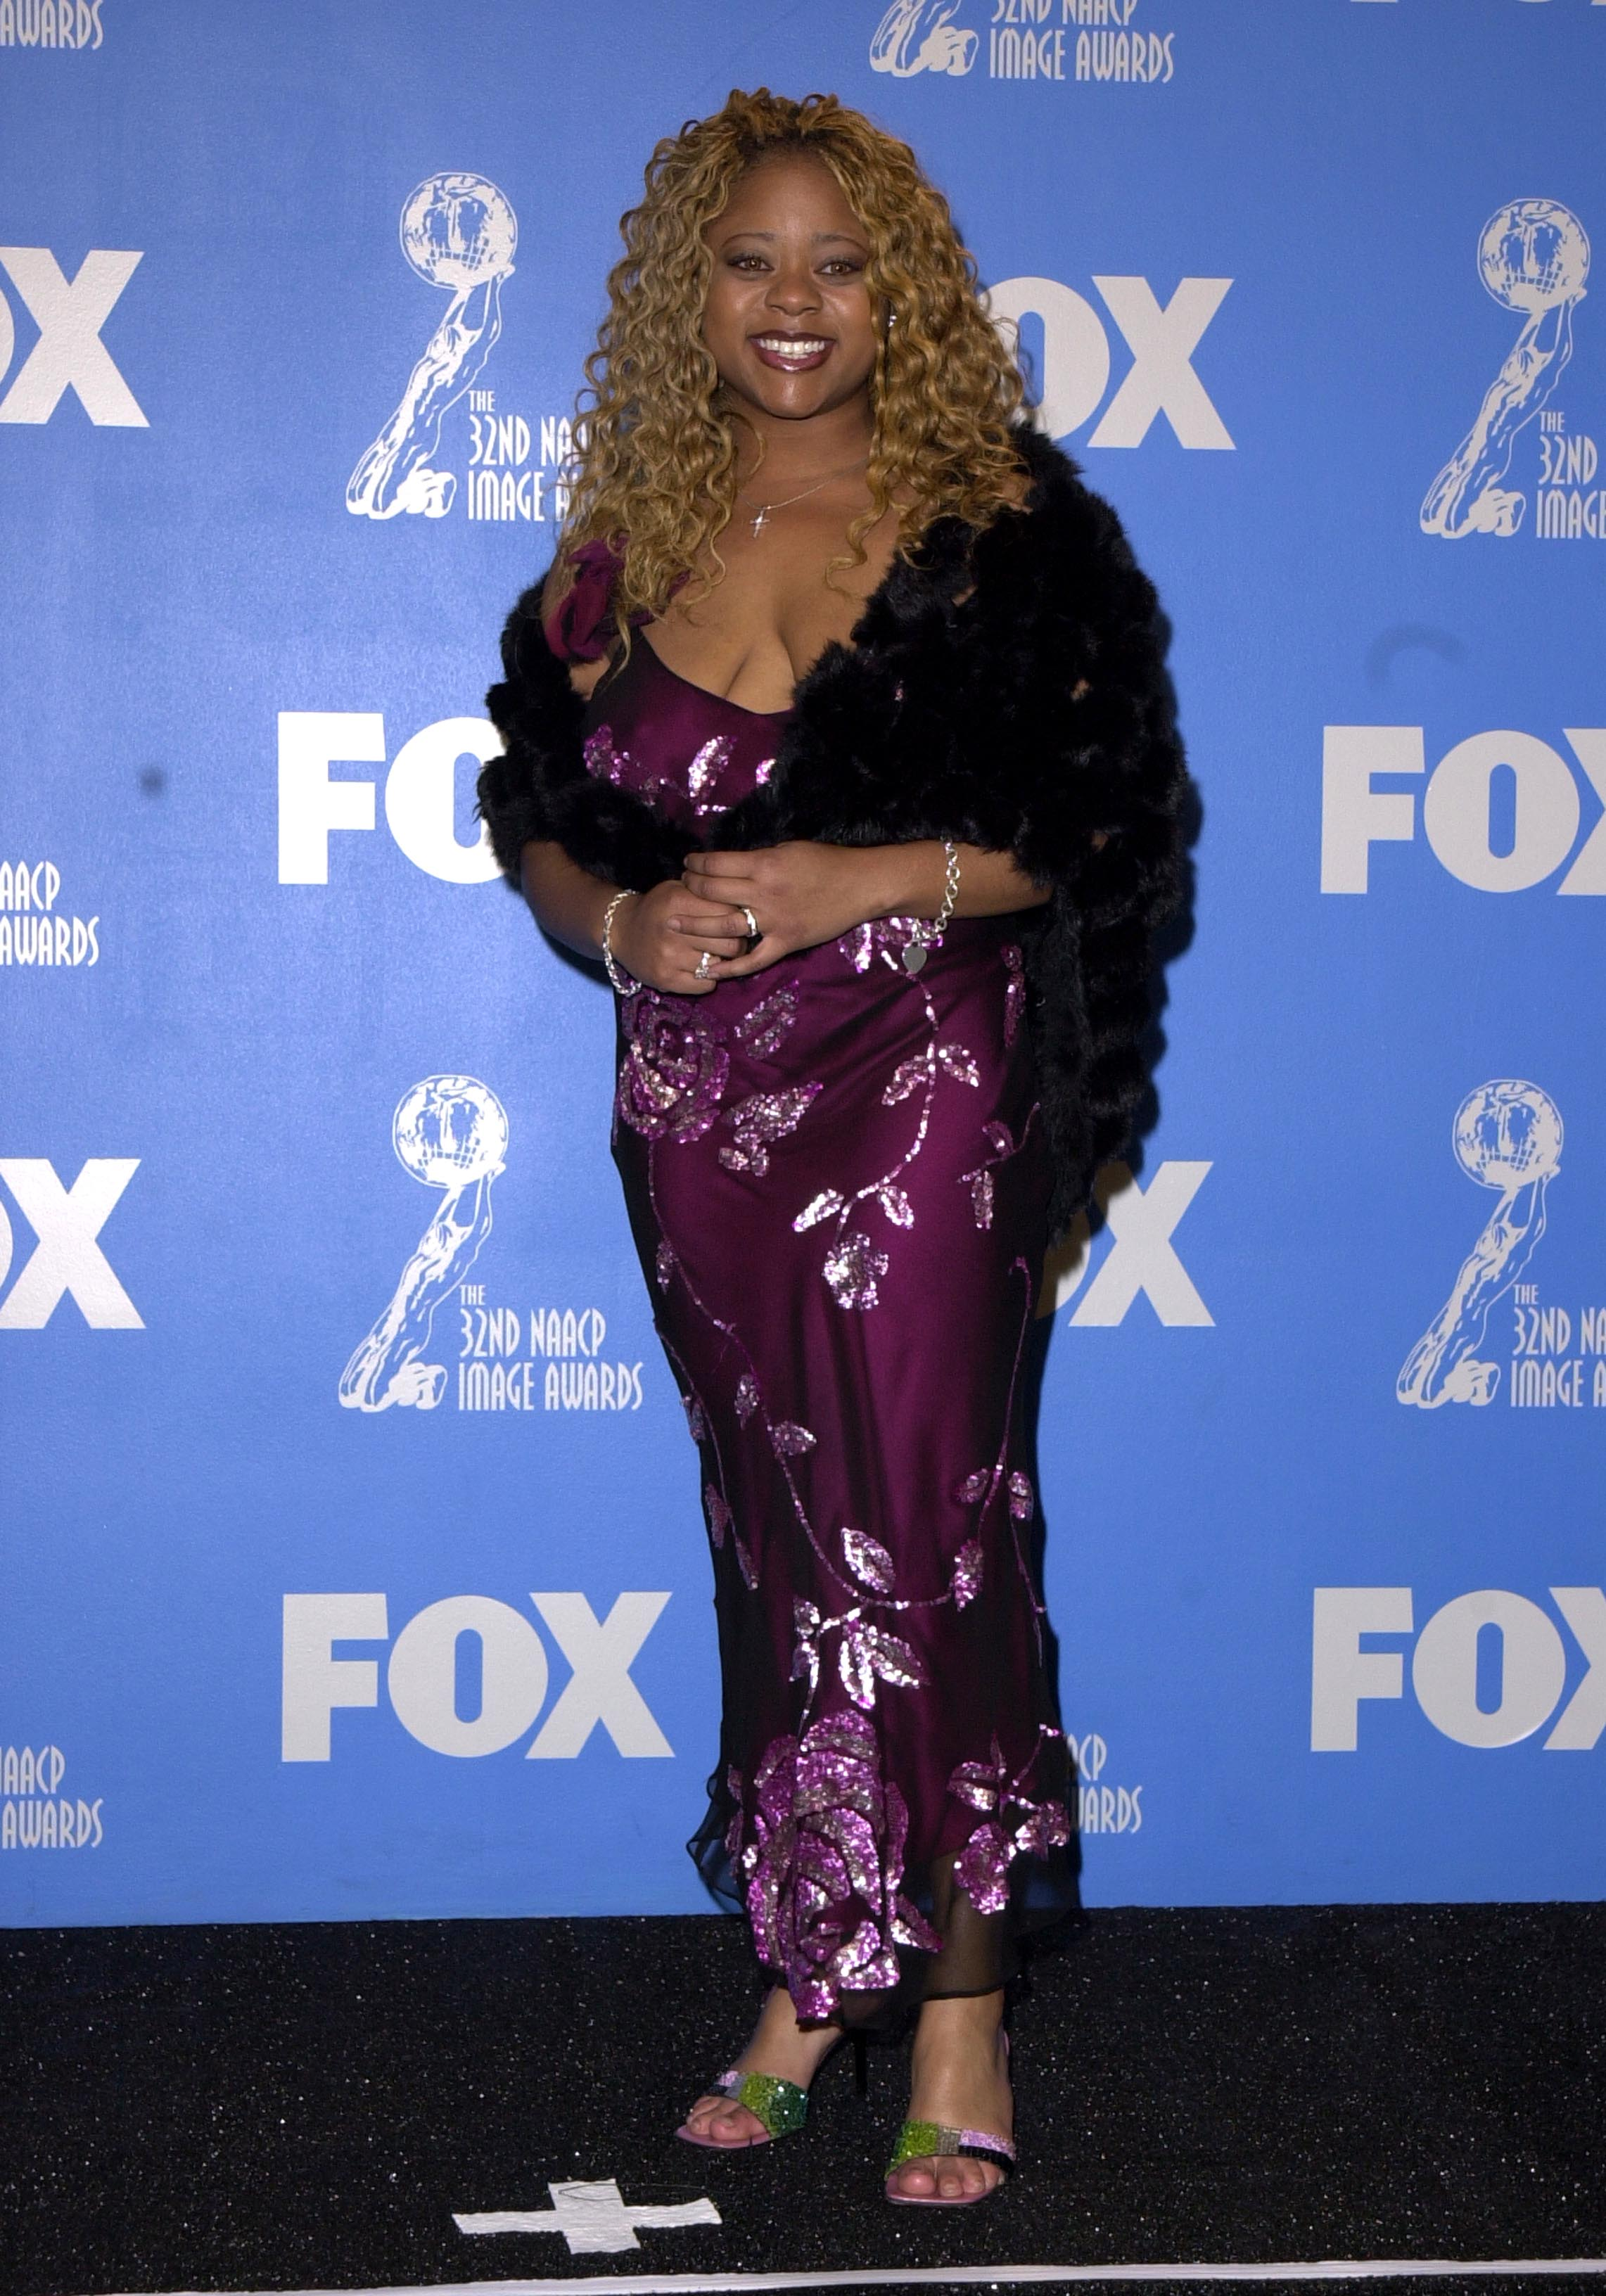 Countess Vaughn at the 32nd Annual NAACP Image Awards -Music, 2001  | Photo: GettyImages